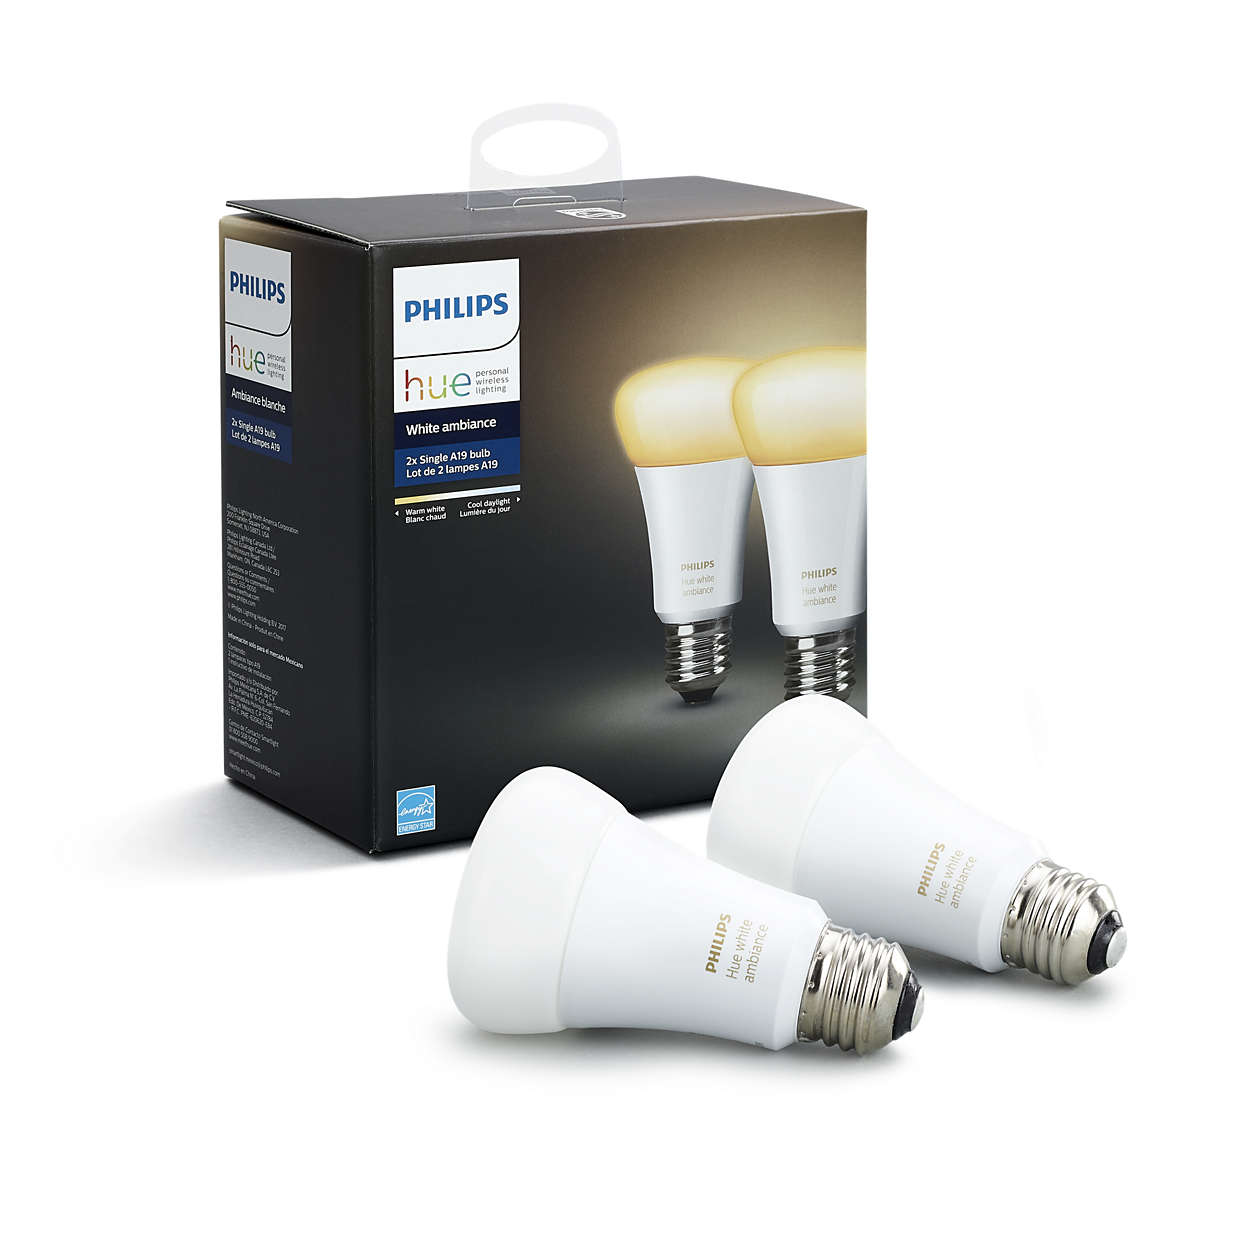 Philips Hue White Ambiance Smart A19 Light Bulb, 60W Equivalent, Hub Required, 2 Bulbs